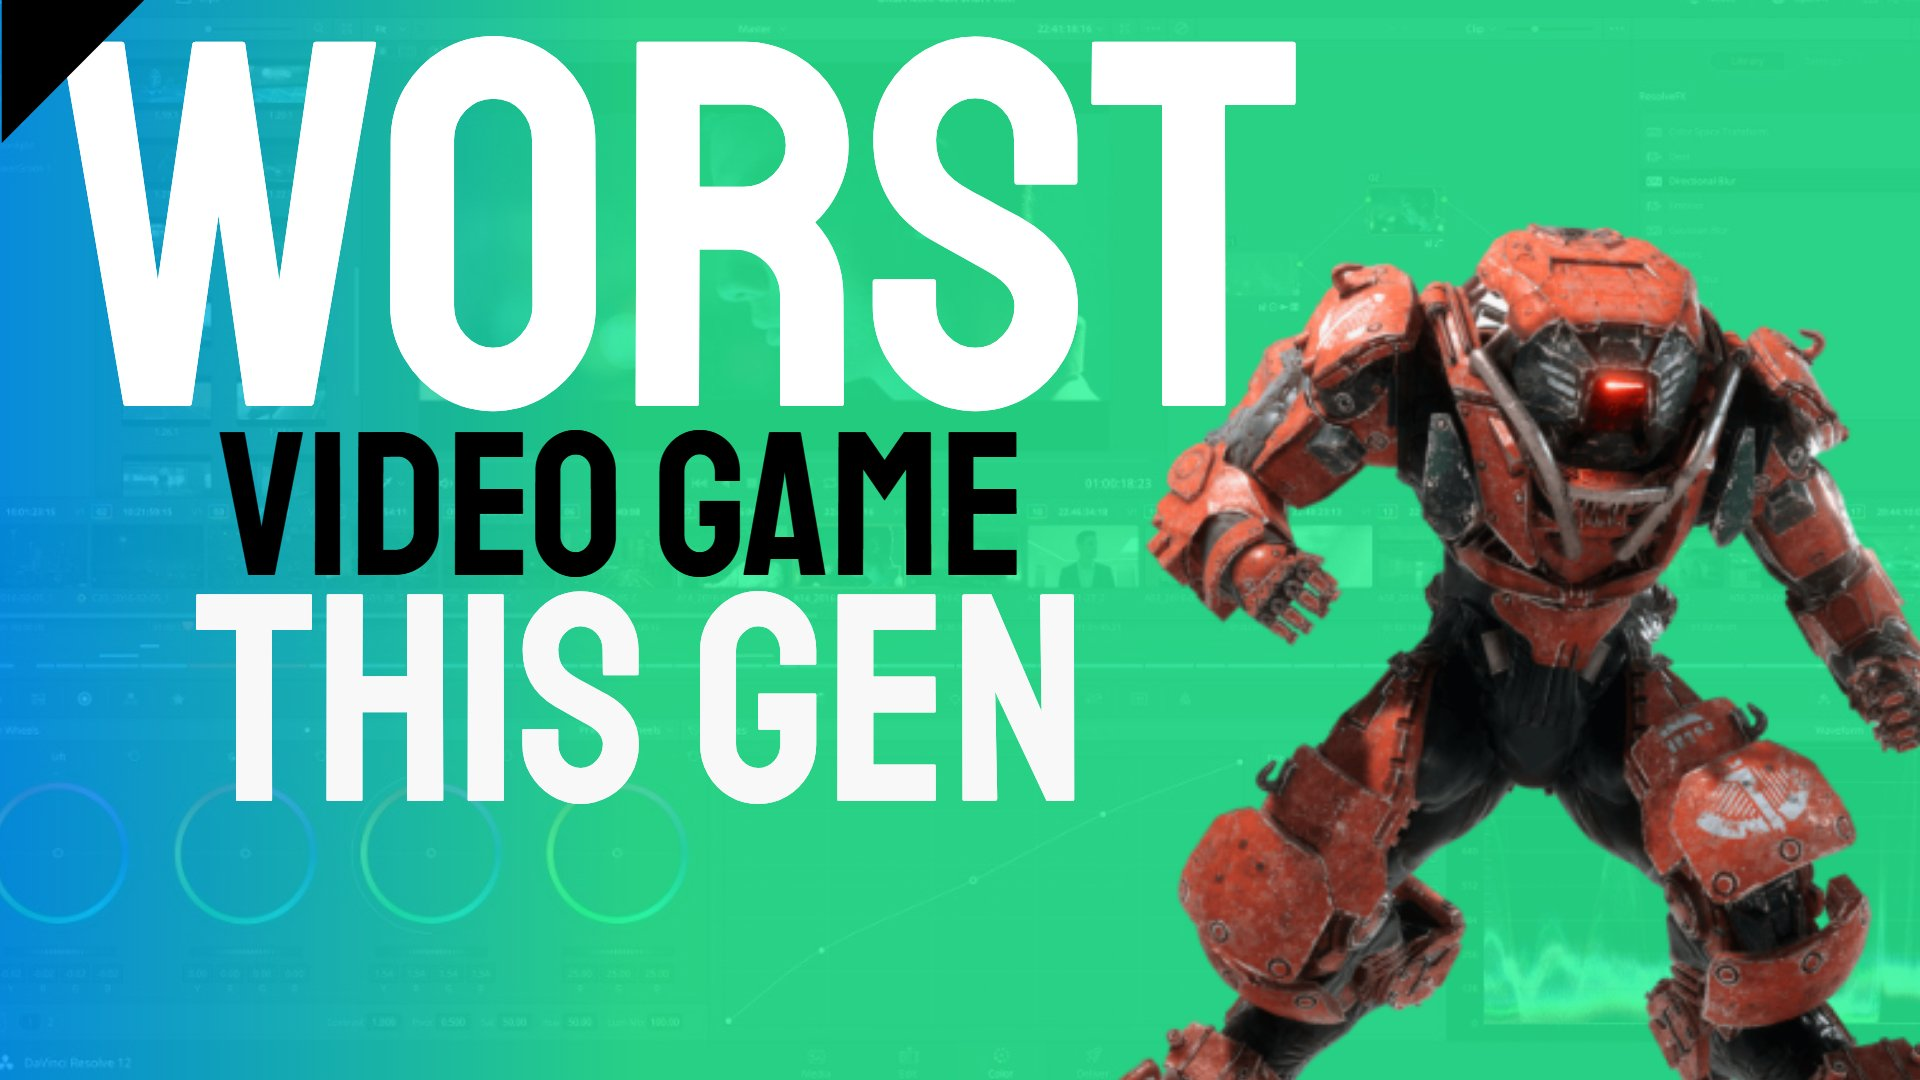 Worst Video Game